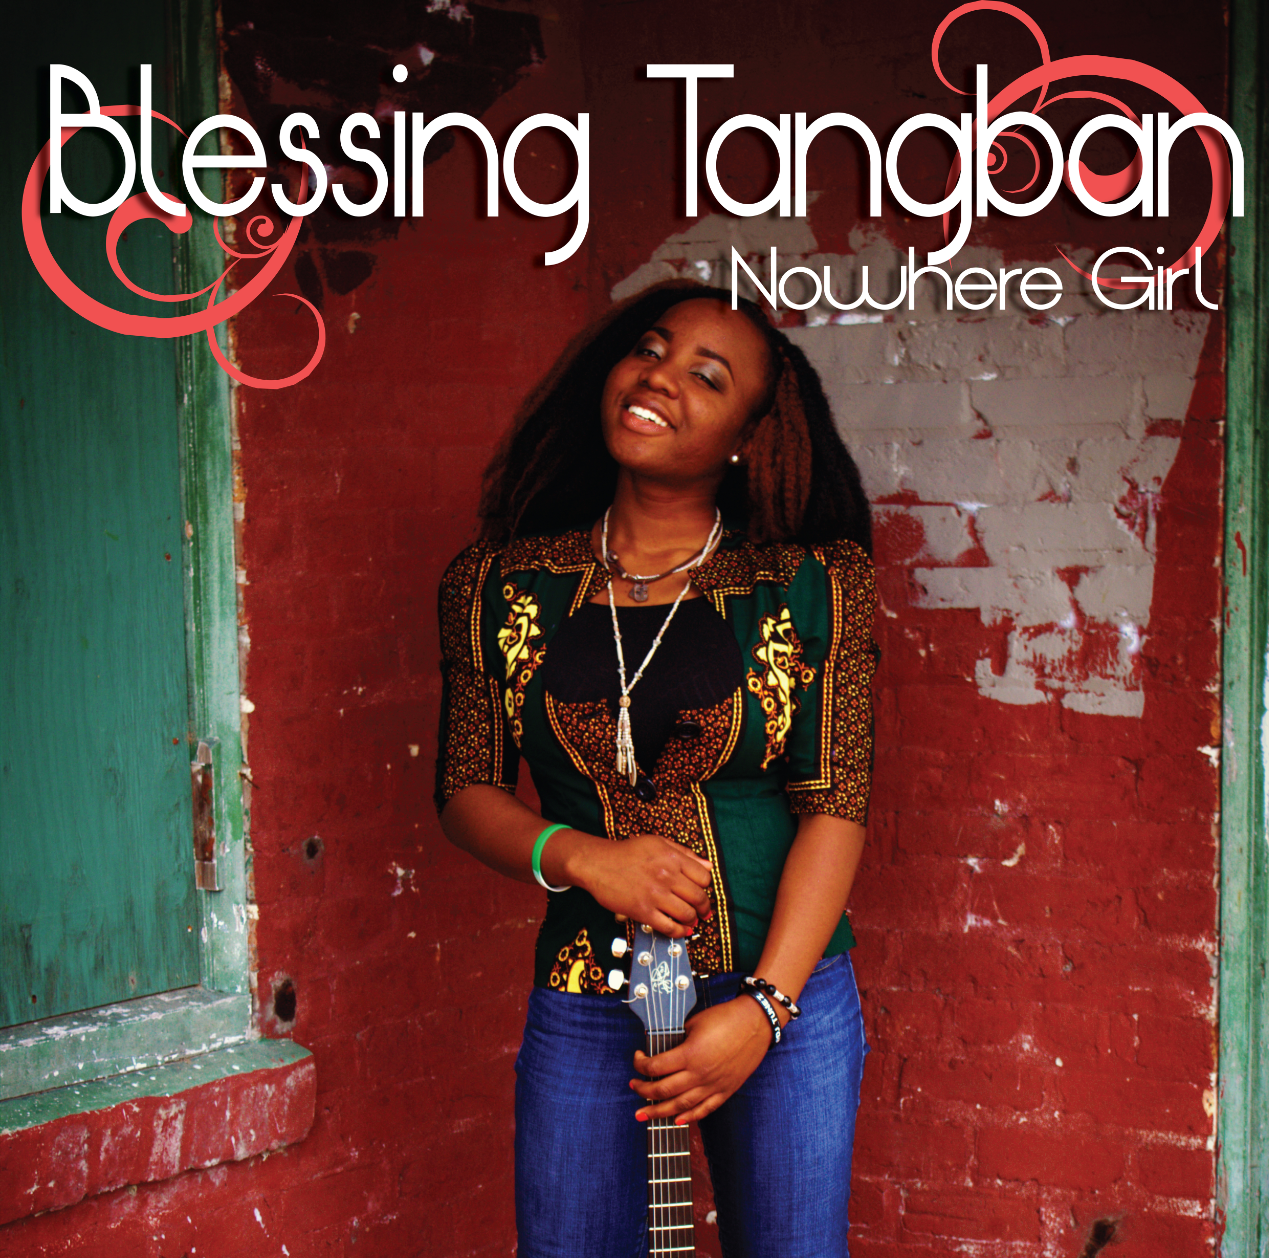 """'Nowhere Girl' - The warbling melodies and stark instrumentation by Blessing Tangban on her Ep, """"Nowhere Girl"""" makes for an intense listen. And when you've gotten used to Blessing and her style, every track on the Ep will fit you like a sumptuous slipper. The absolute beauty of her music is worlds apart from what you hear on the radio.What really makes """"Nowhere Girl"""" so fresh-sounding though, is its wonderful minimalism – less really is more in this case. These songs feature simple acoustic guitars leading to a sparse yet beautifully played sound and gently, captivating vocals.The EP features the hit song 'Pennsylvania' which met popular acclaim worldwide due to it's beautiful and relatable story line.Blessing Tangban has created a lyrical and musical feast, subtle yet sophisticated, easy listening, yet profound and sometimes even a little disturbing; """"Nowhere Girl"""" certainly deserves to be discovered by a generation of thoughtful music fans.'Nowhere Girl' is available for streaming and purchase on all digital music distribution platforms.as a special gift for your support, You can now Download this masterpeice for free today on Soundcloud!"""